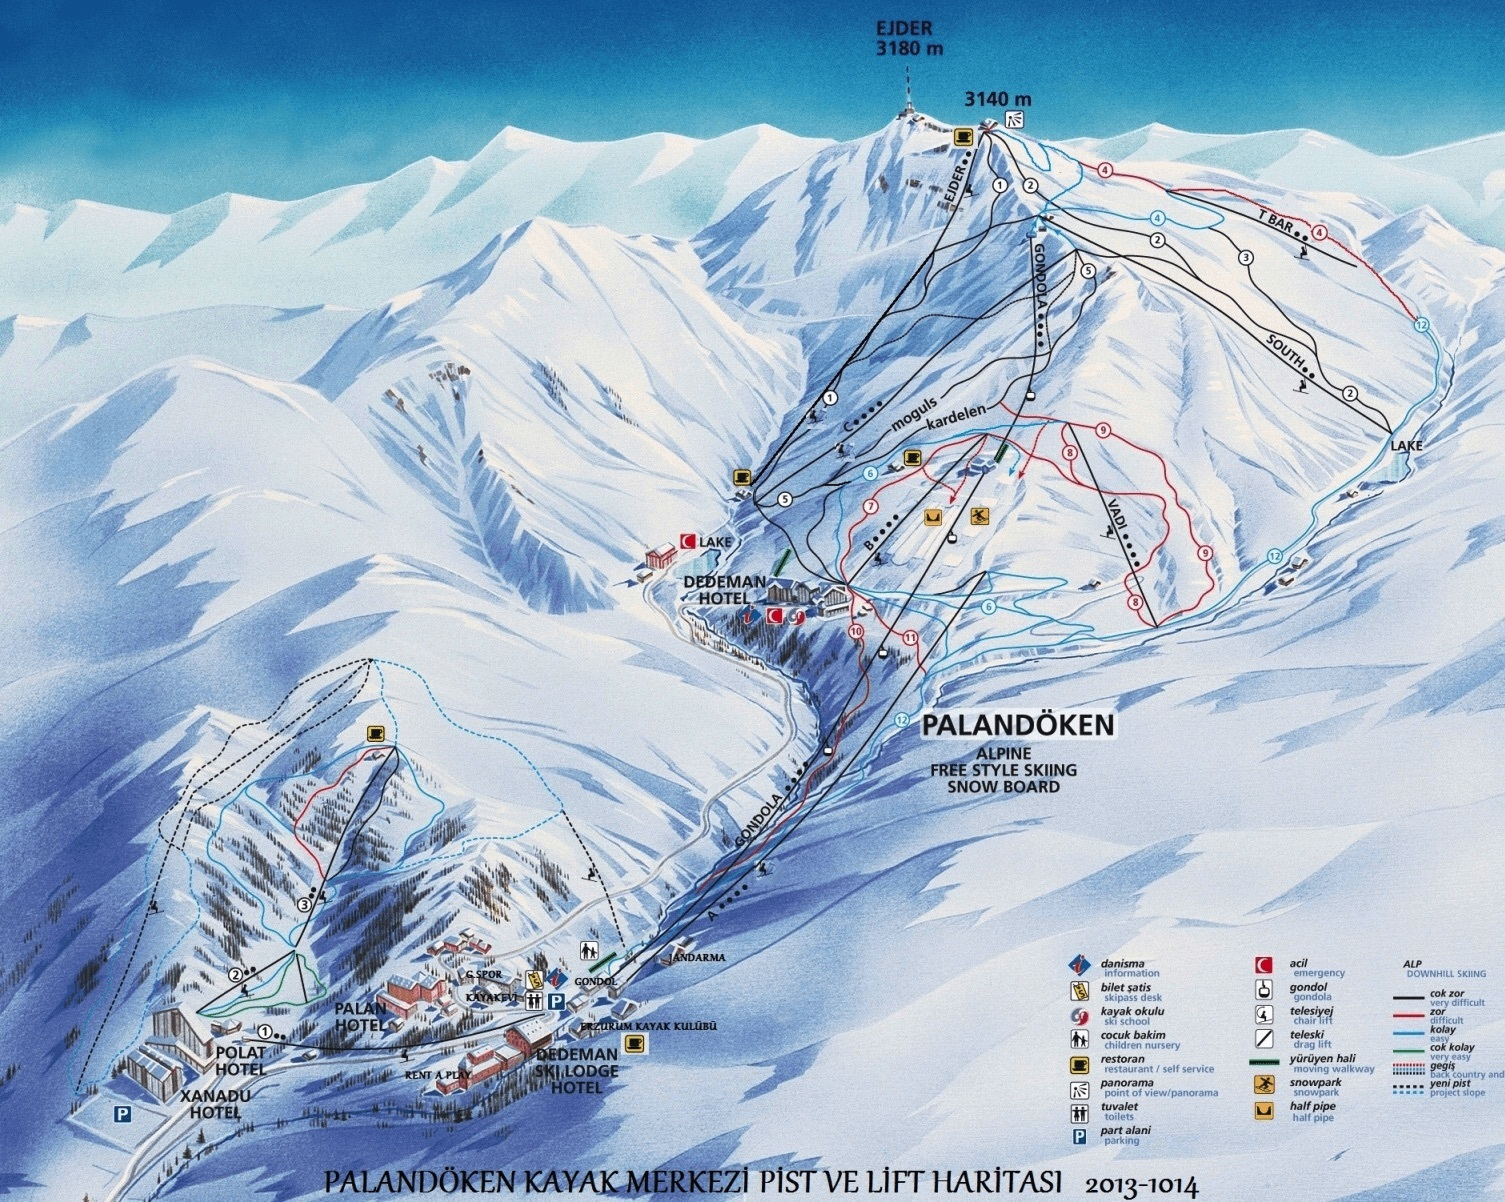 Mt Palandken Ski Resort Guide Location Map Mt Palandken ski